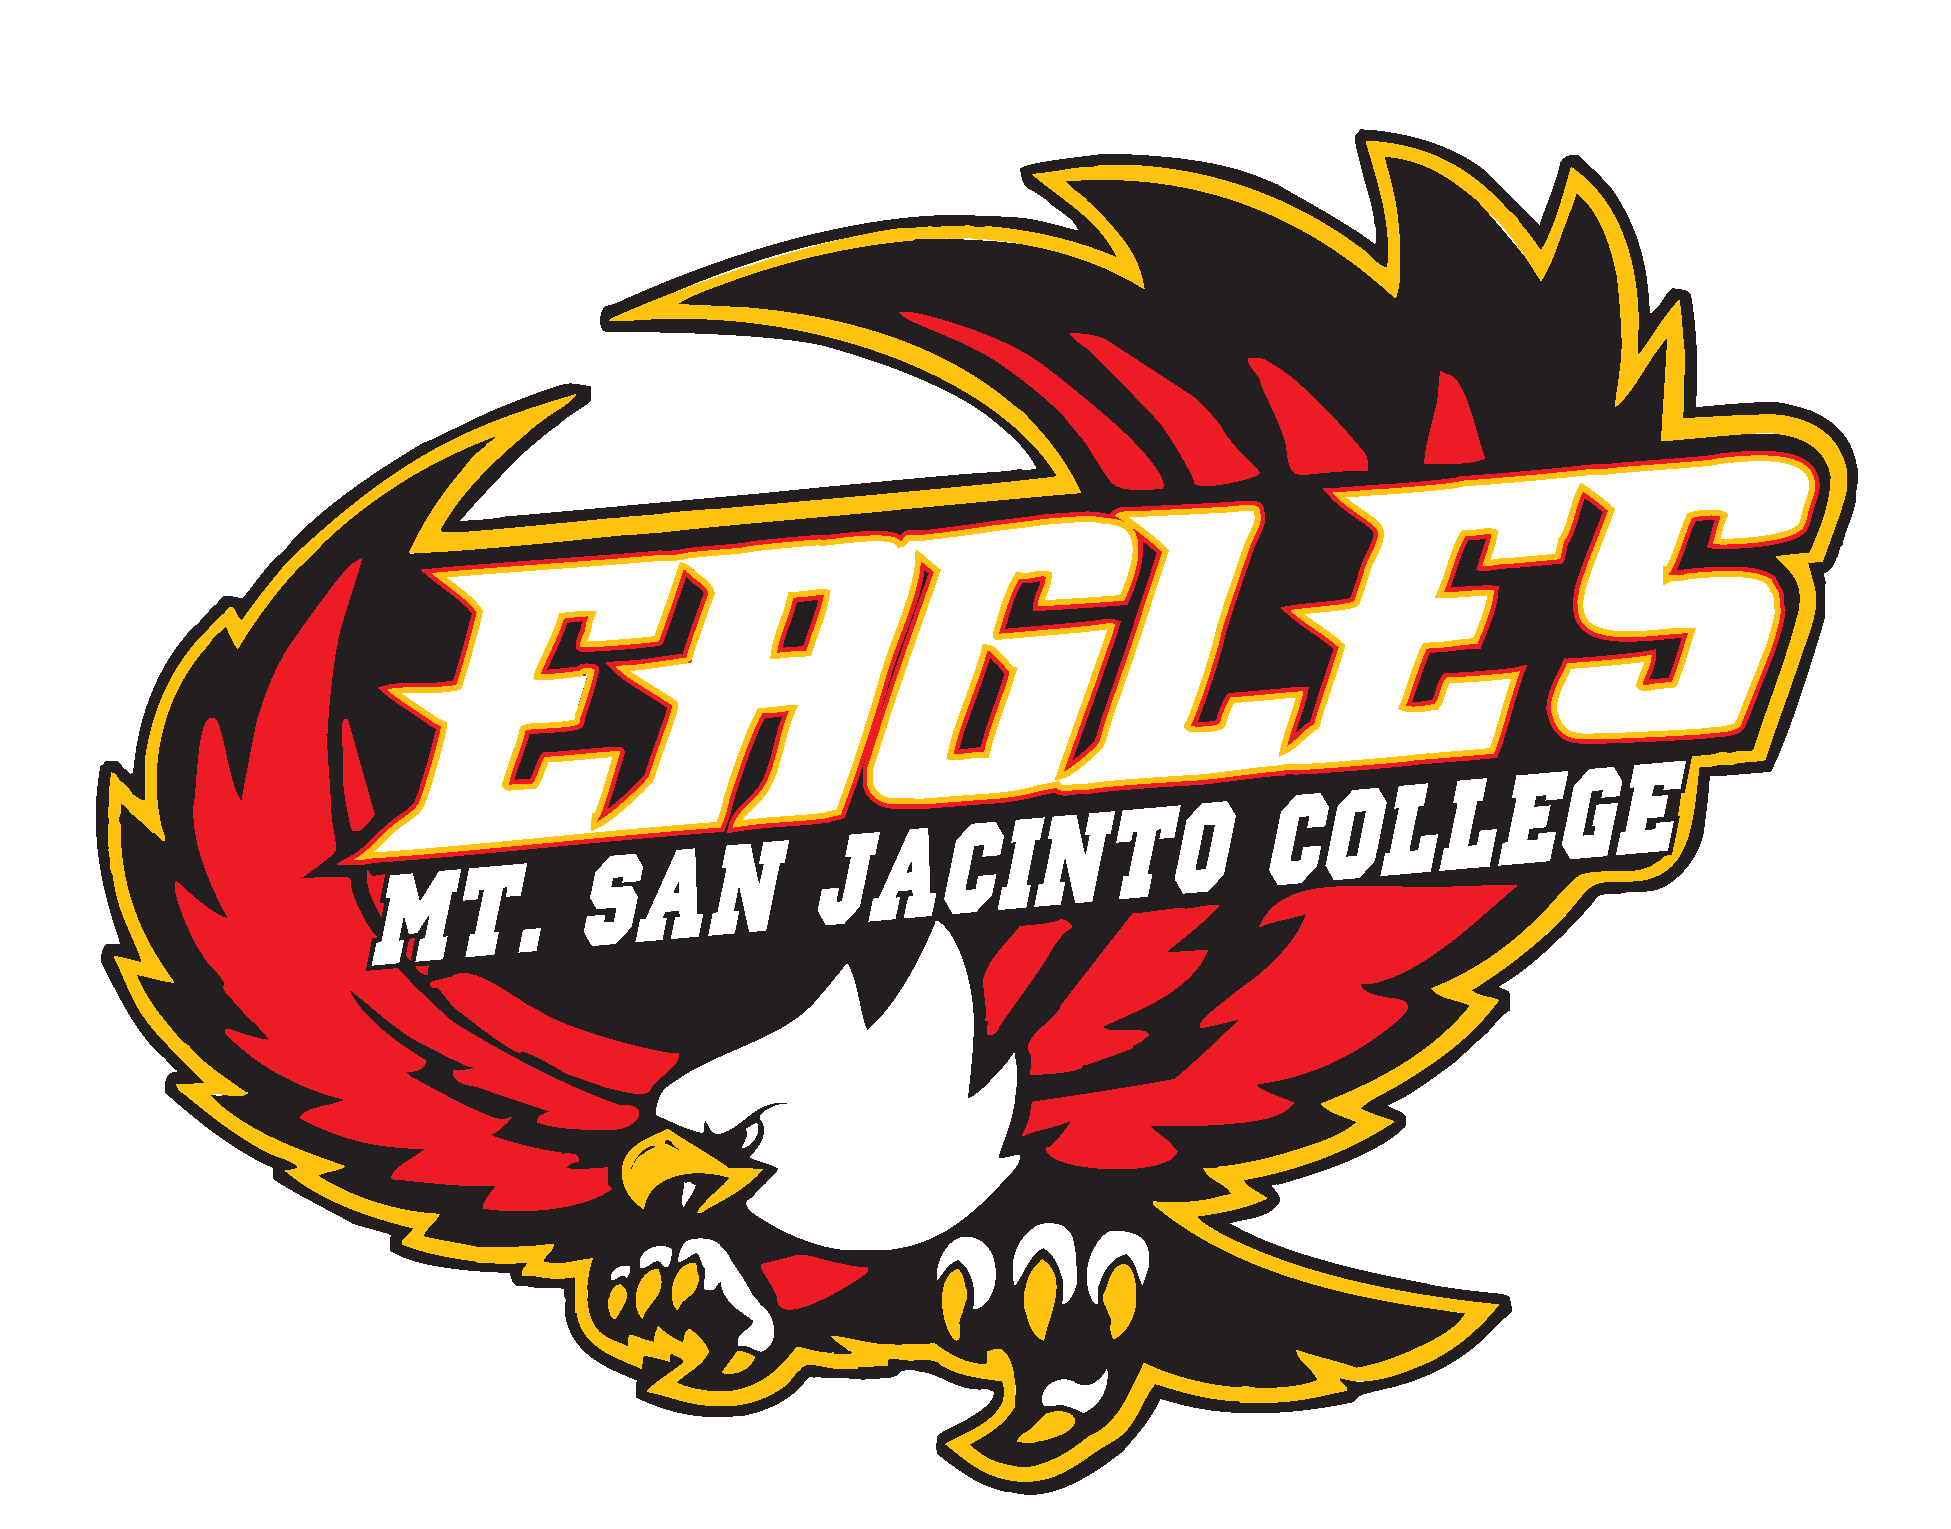 MSJC Opts Out of Spring I Athletics Season Amid Ongoing COVD-19 Pandemic